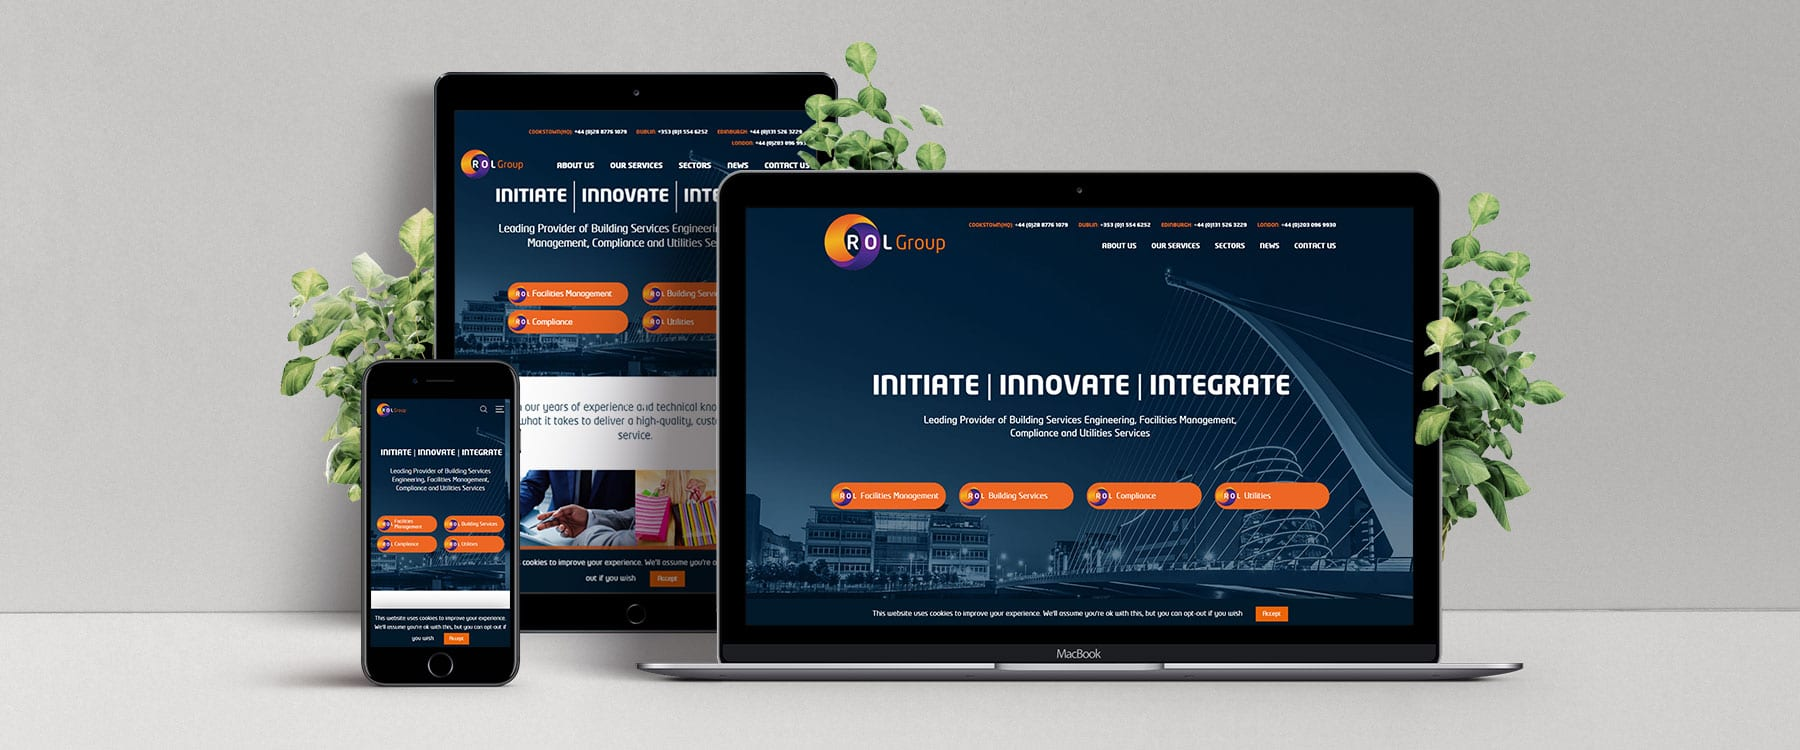 ROL Group Unveil Exciting New Branding & Brochure Website Image